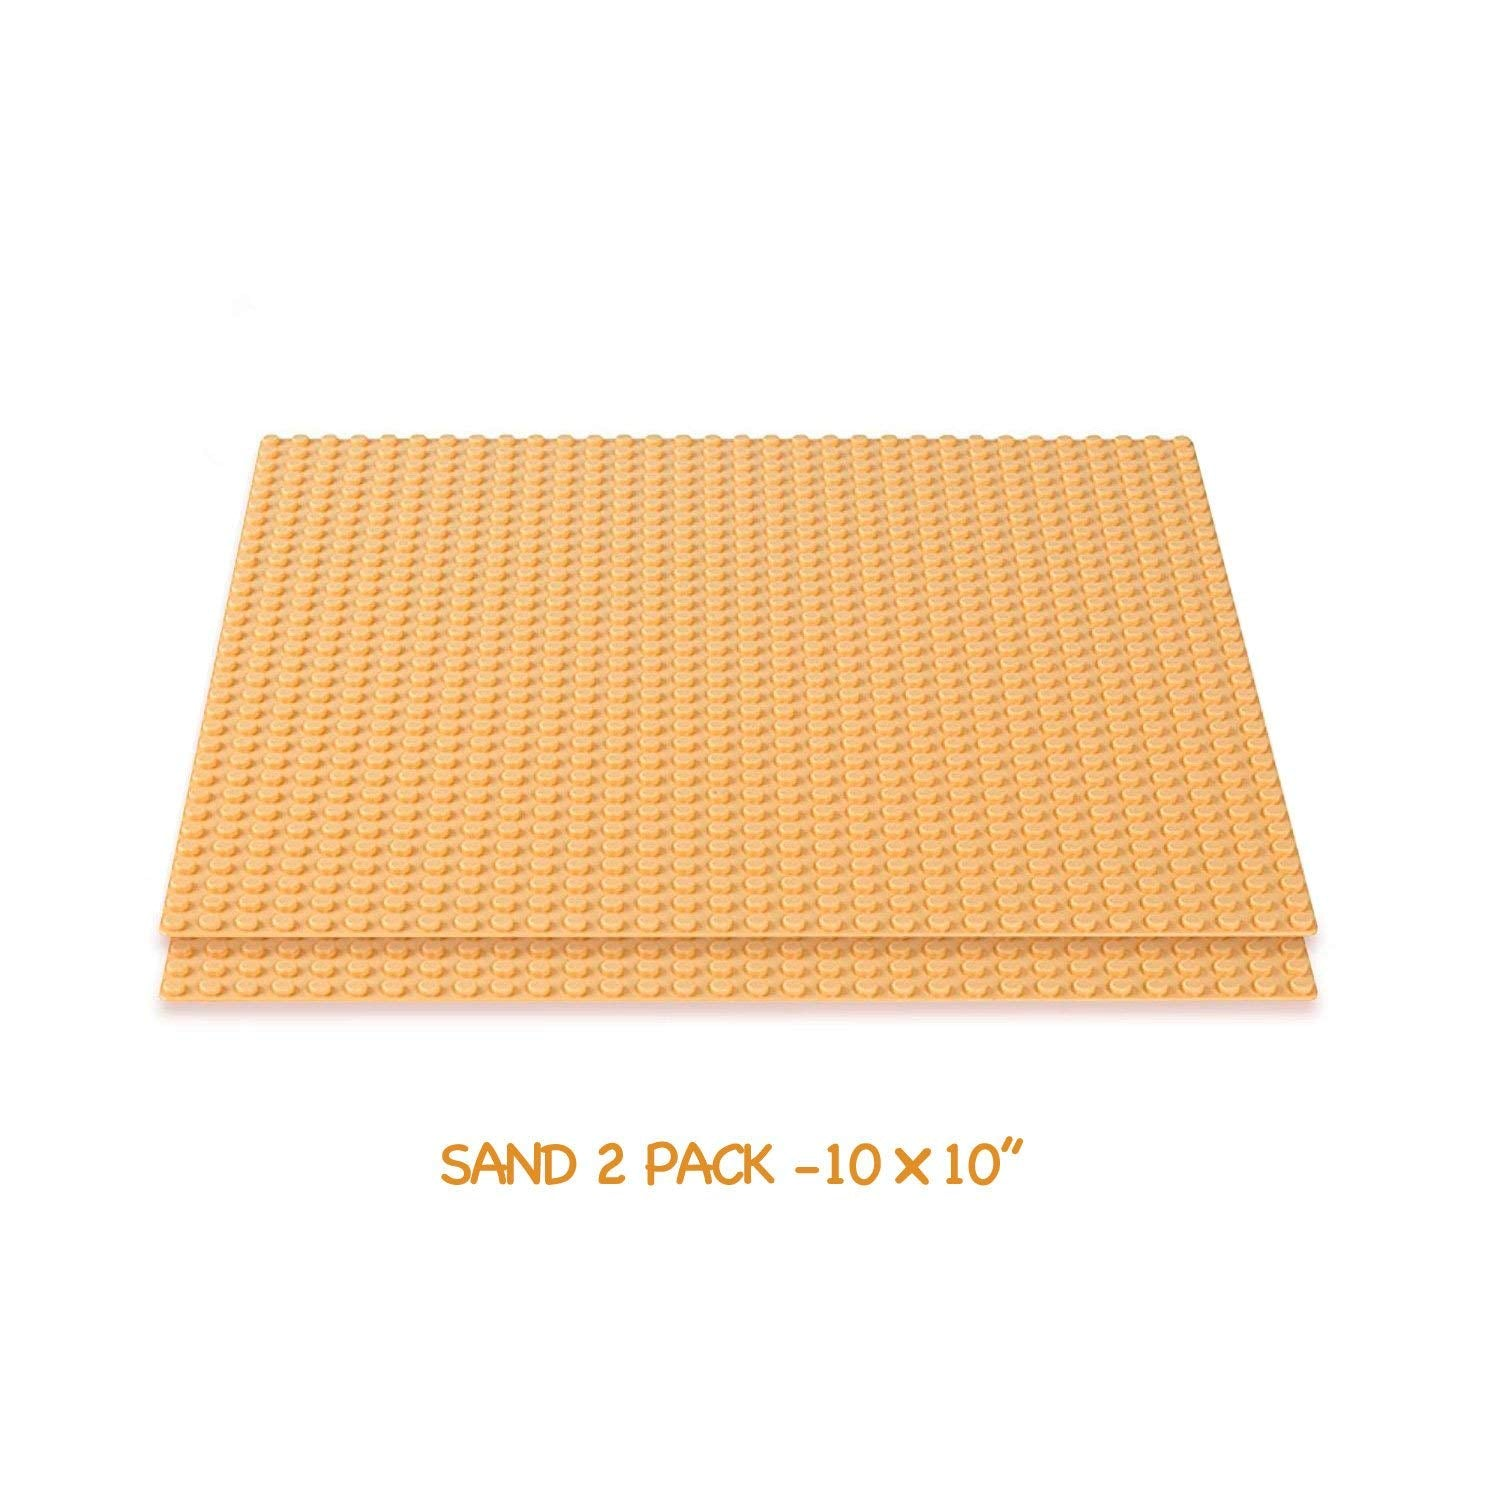 "Brick Building Baseplates (2 pieces of 10"" x 10""), Works with Major Brick Building Sets, Wonderful Plate for Kids (Sand)"